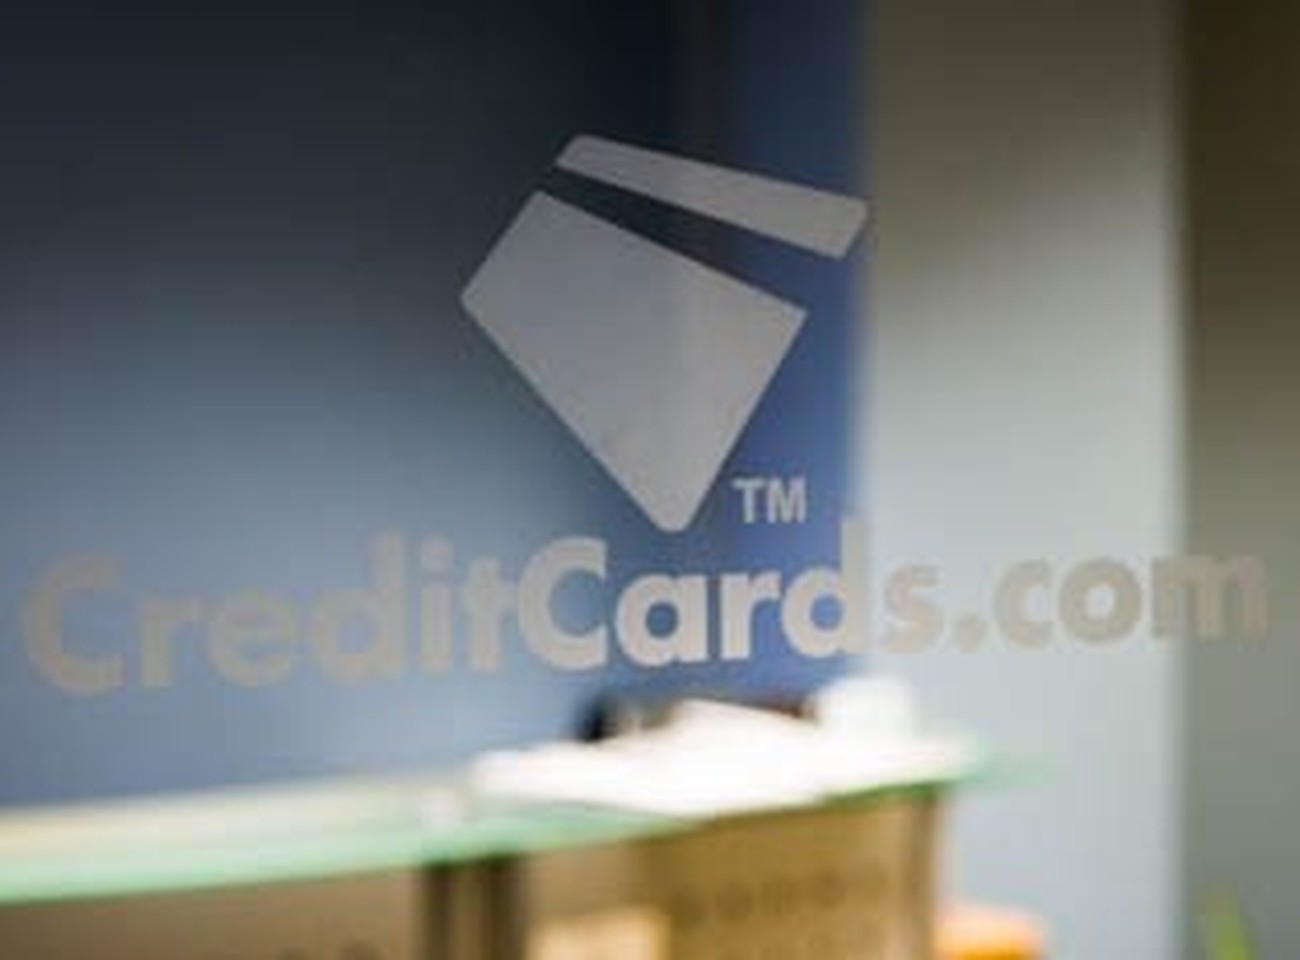 Purchase protection is a complimentary benefit on some credit cards that covers the cost of repairing or replacing the item. Small Business Credit Card Study: Business credit cards are not legally bound to provide the same user protections as personal credit cards. But some credit card companies proactively extend certain benefits to their.